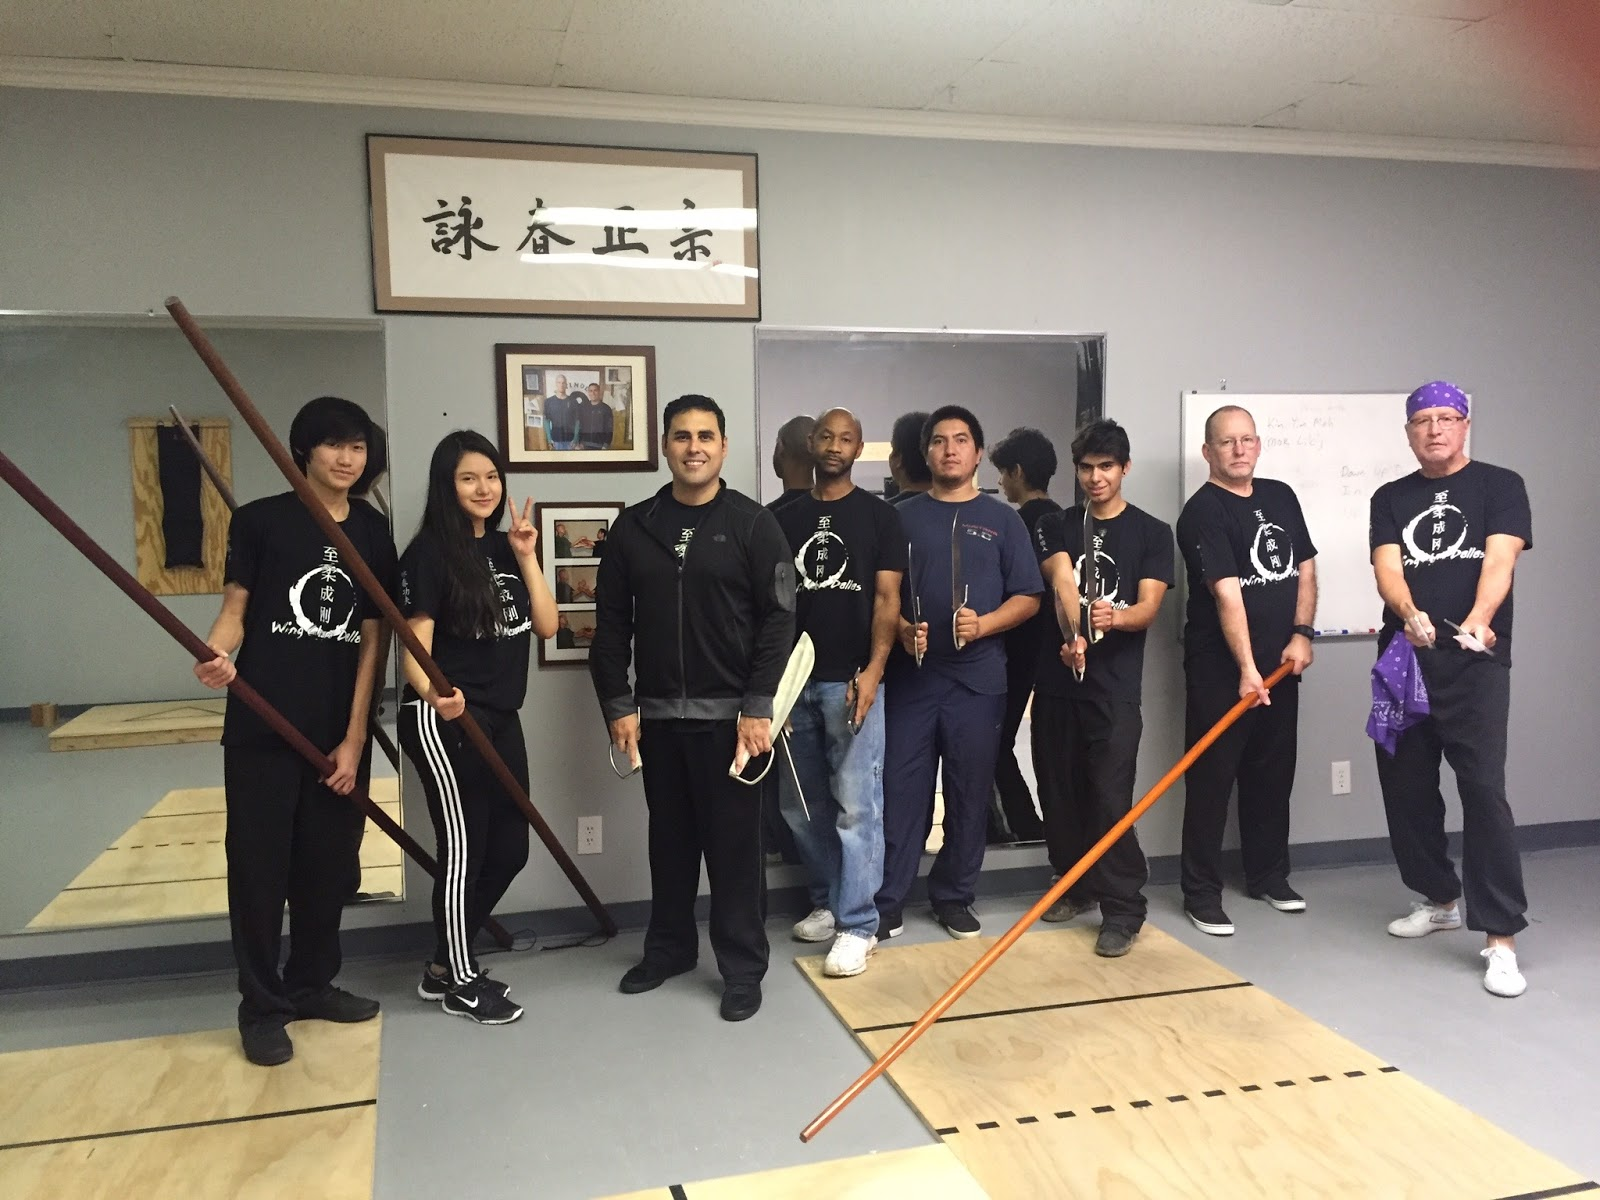 Wing Chun Dallas Kung Fu: Weapons Wednesday